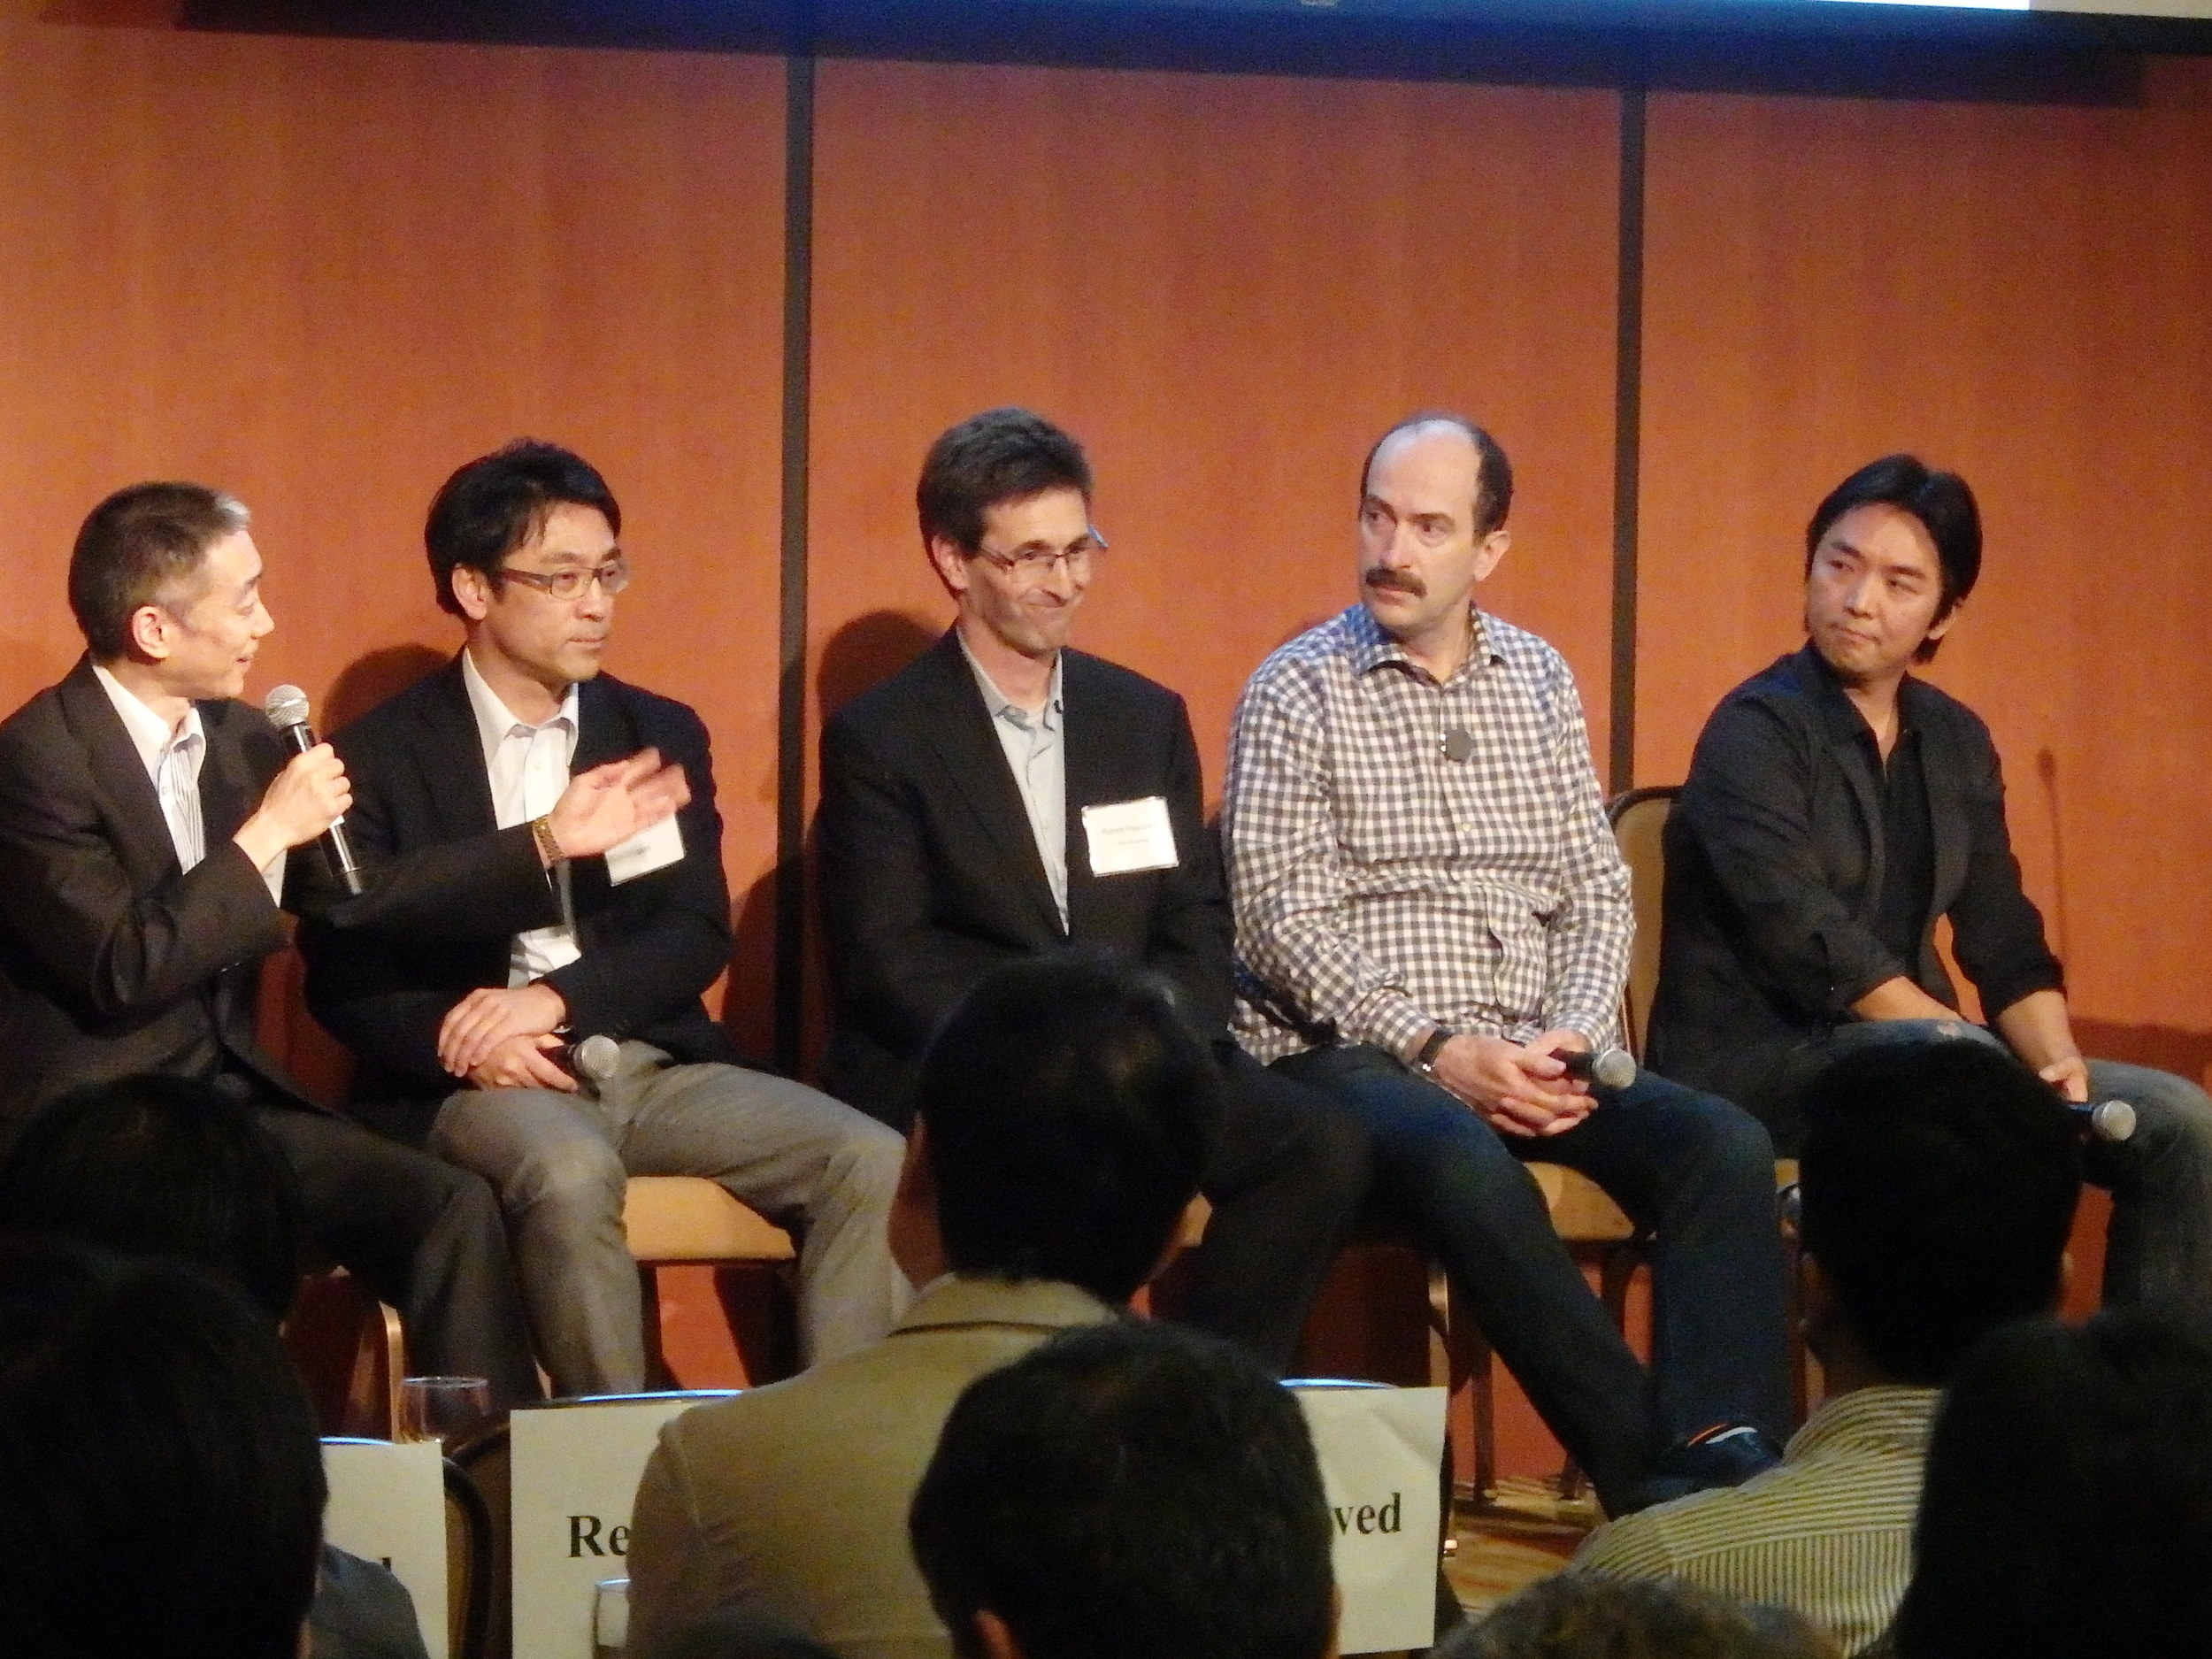 The panelists, from left: Yoshiaki Tojo, Dr. Ikkei Matsuda, Robert Pearlstein, Tom Kelly, and Gen Isayama